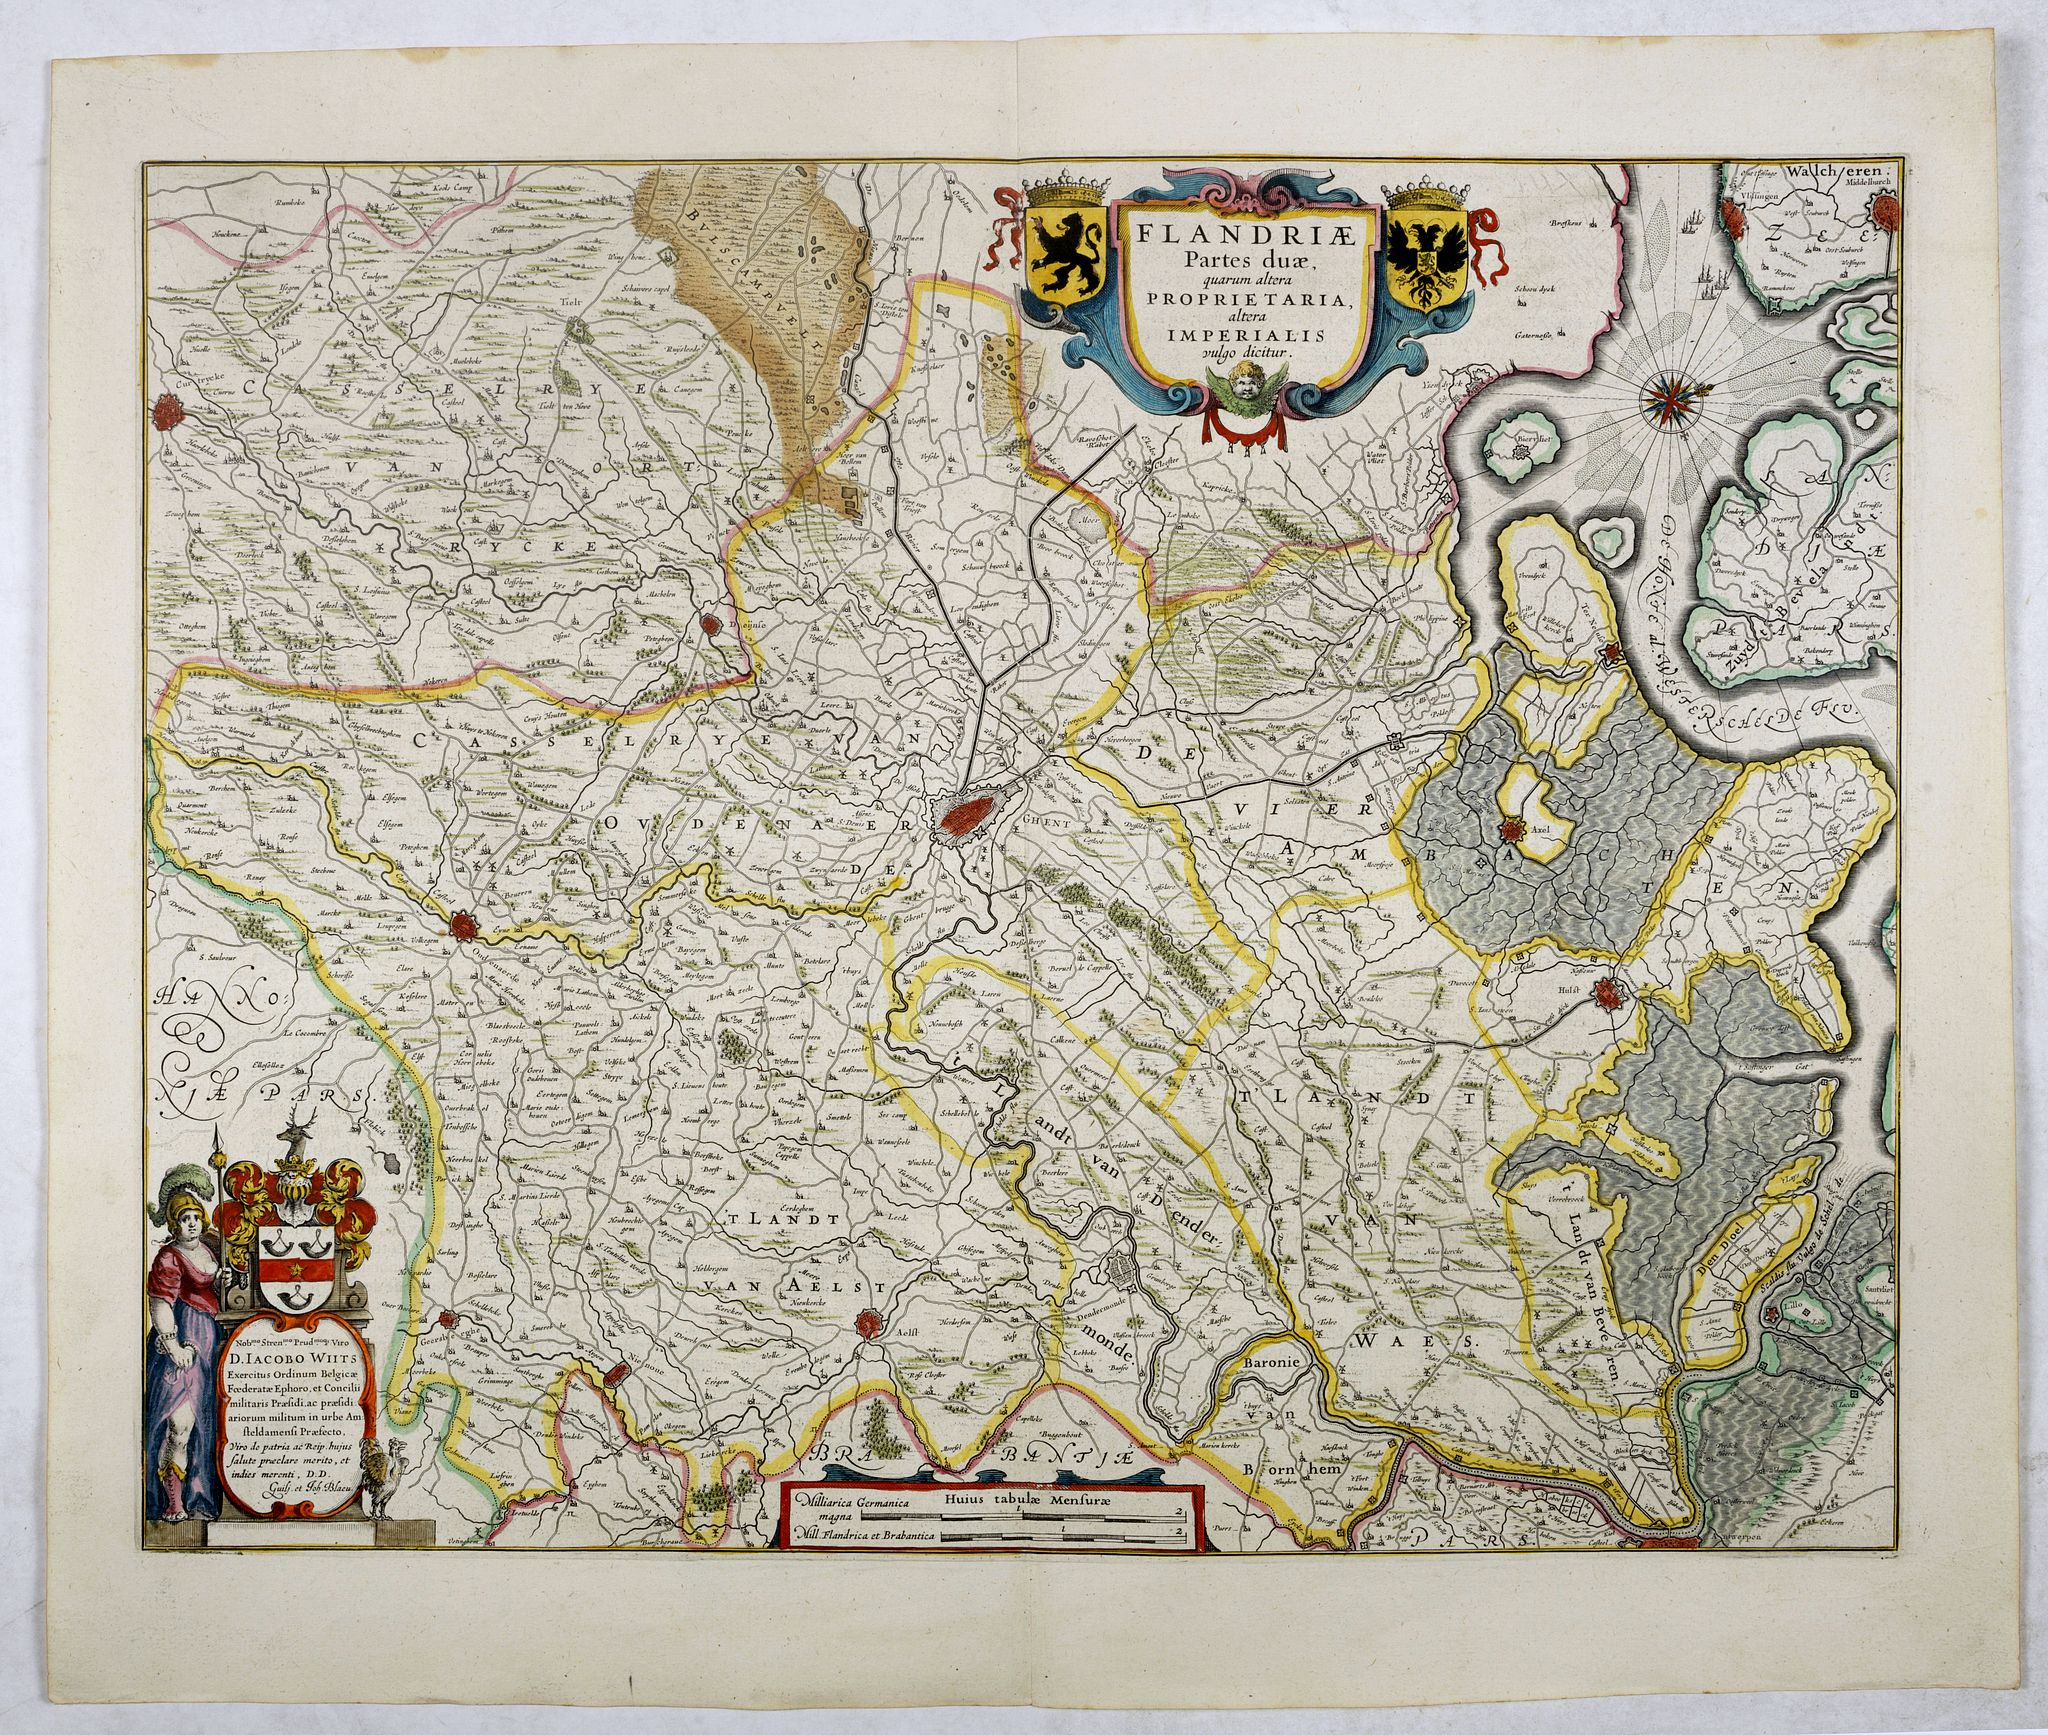 BLAEU, W.,  Flandriae Partes duae quarum altera proprietaria . . ., antique map, old maps